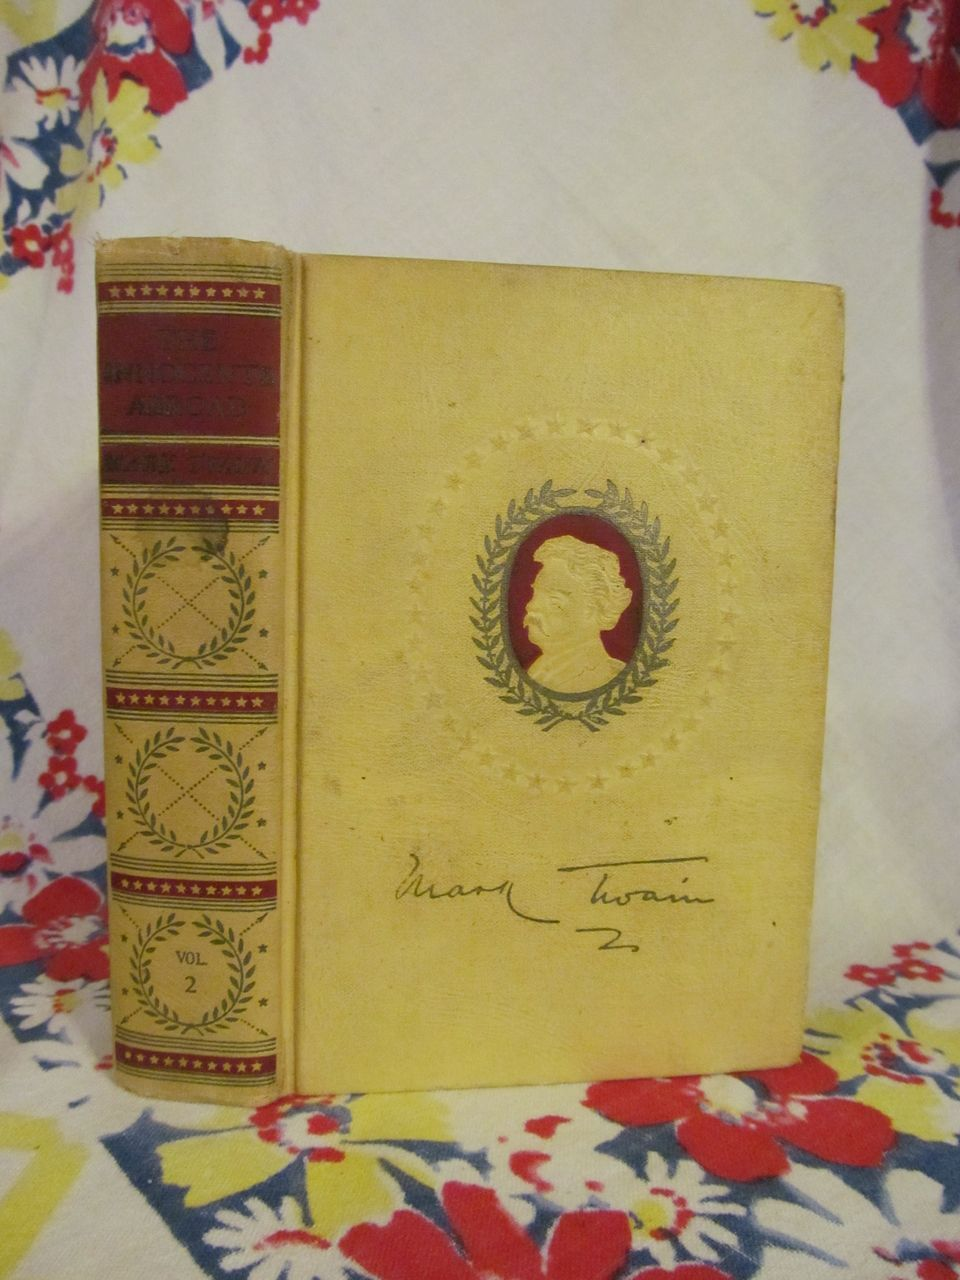 Mark Twain,Innocents Abroad,Vol 2,American Artist & Authorized Edition,Harper Brothers